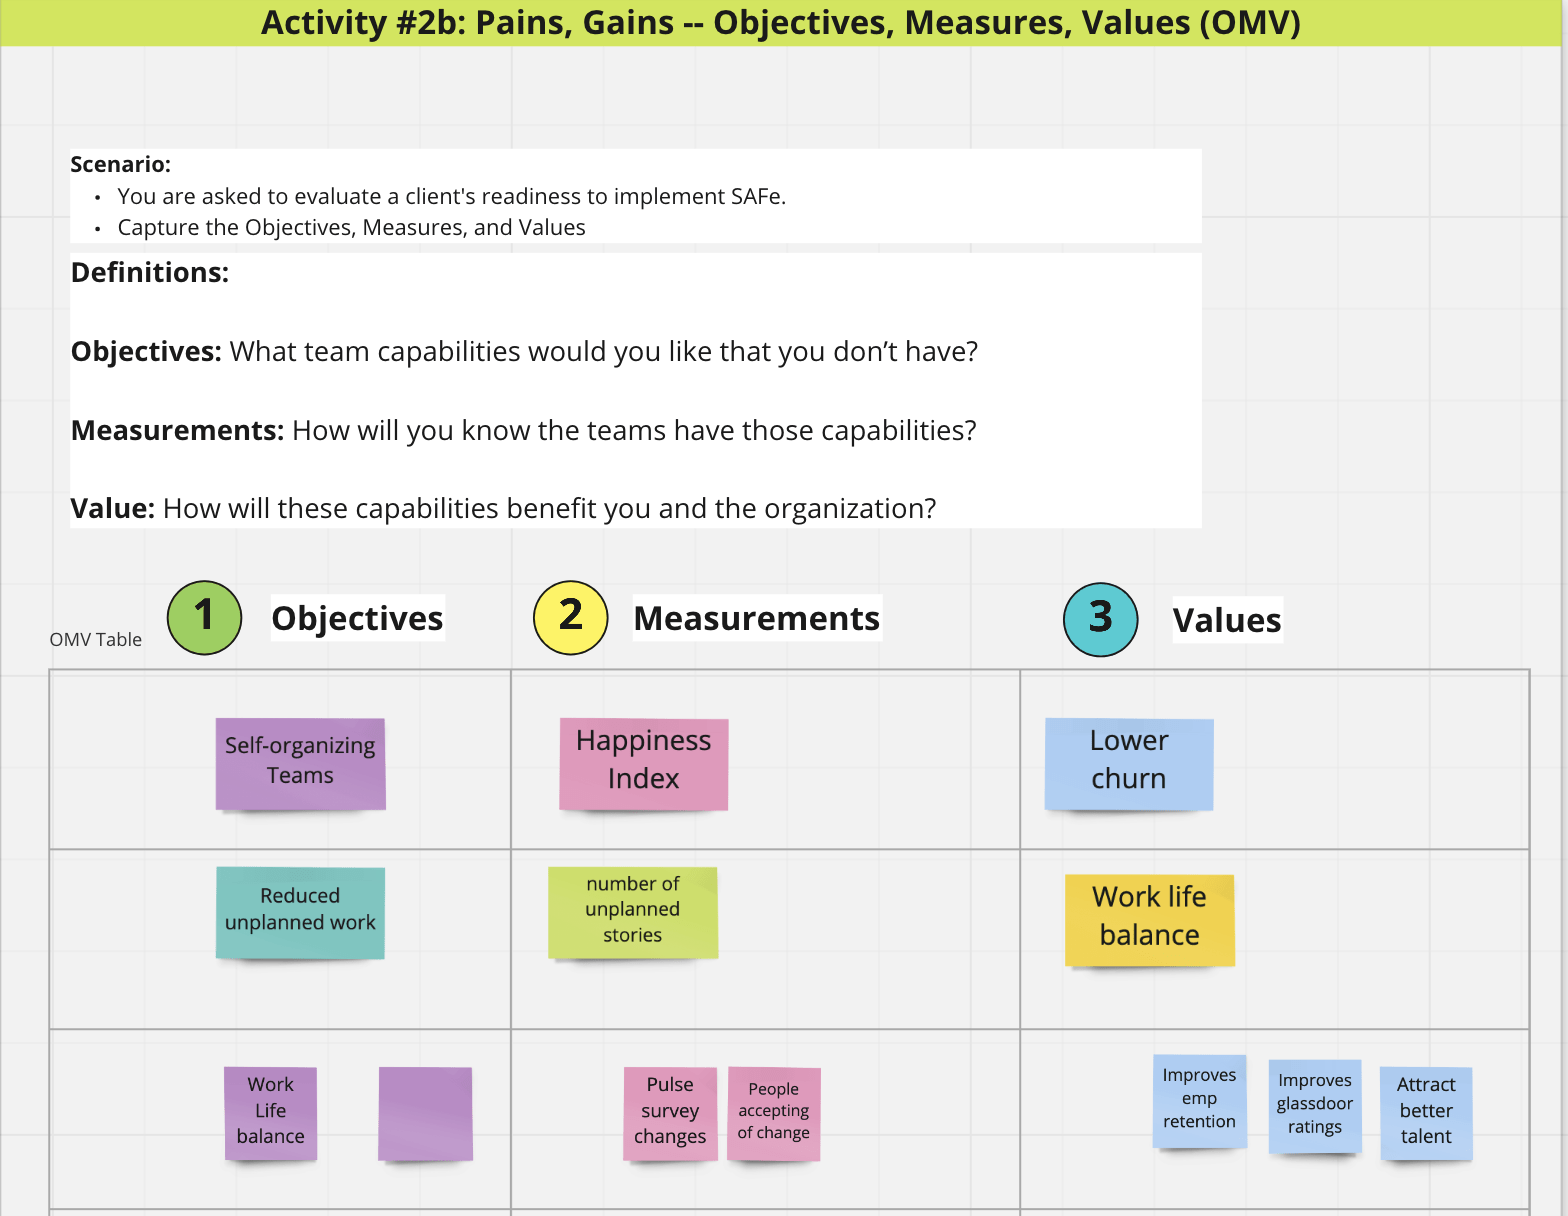 Objectives, Measures, and Values (OMV)